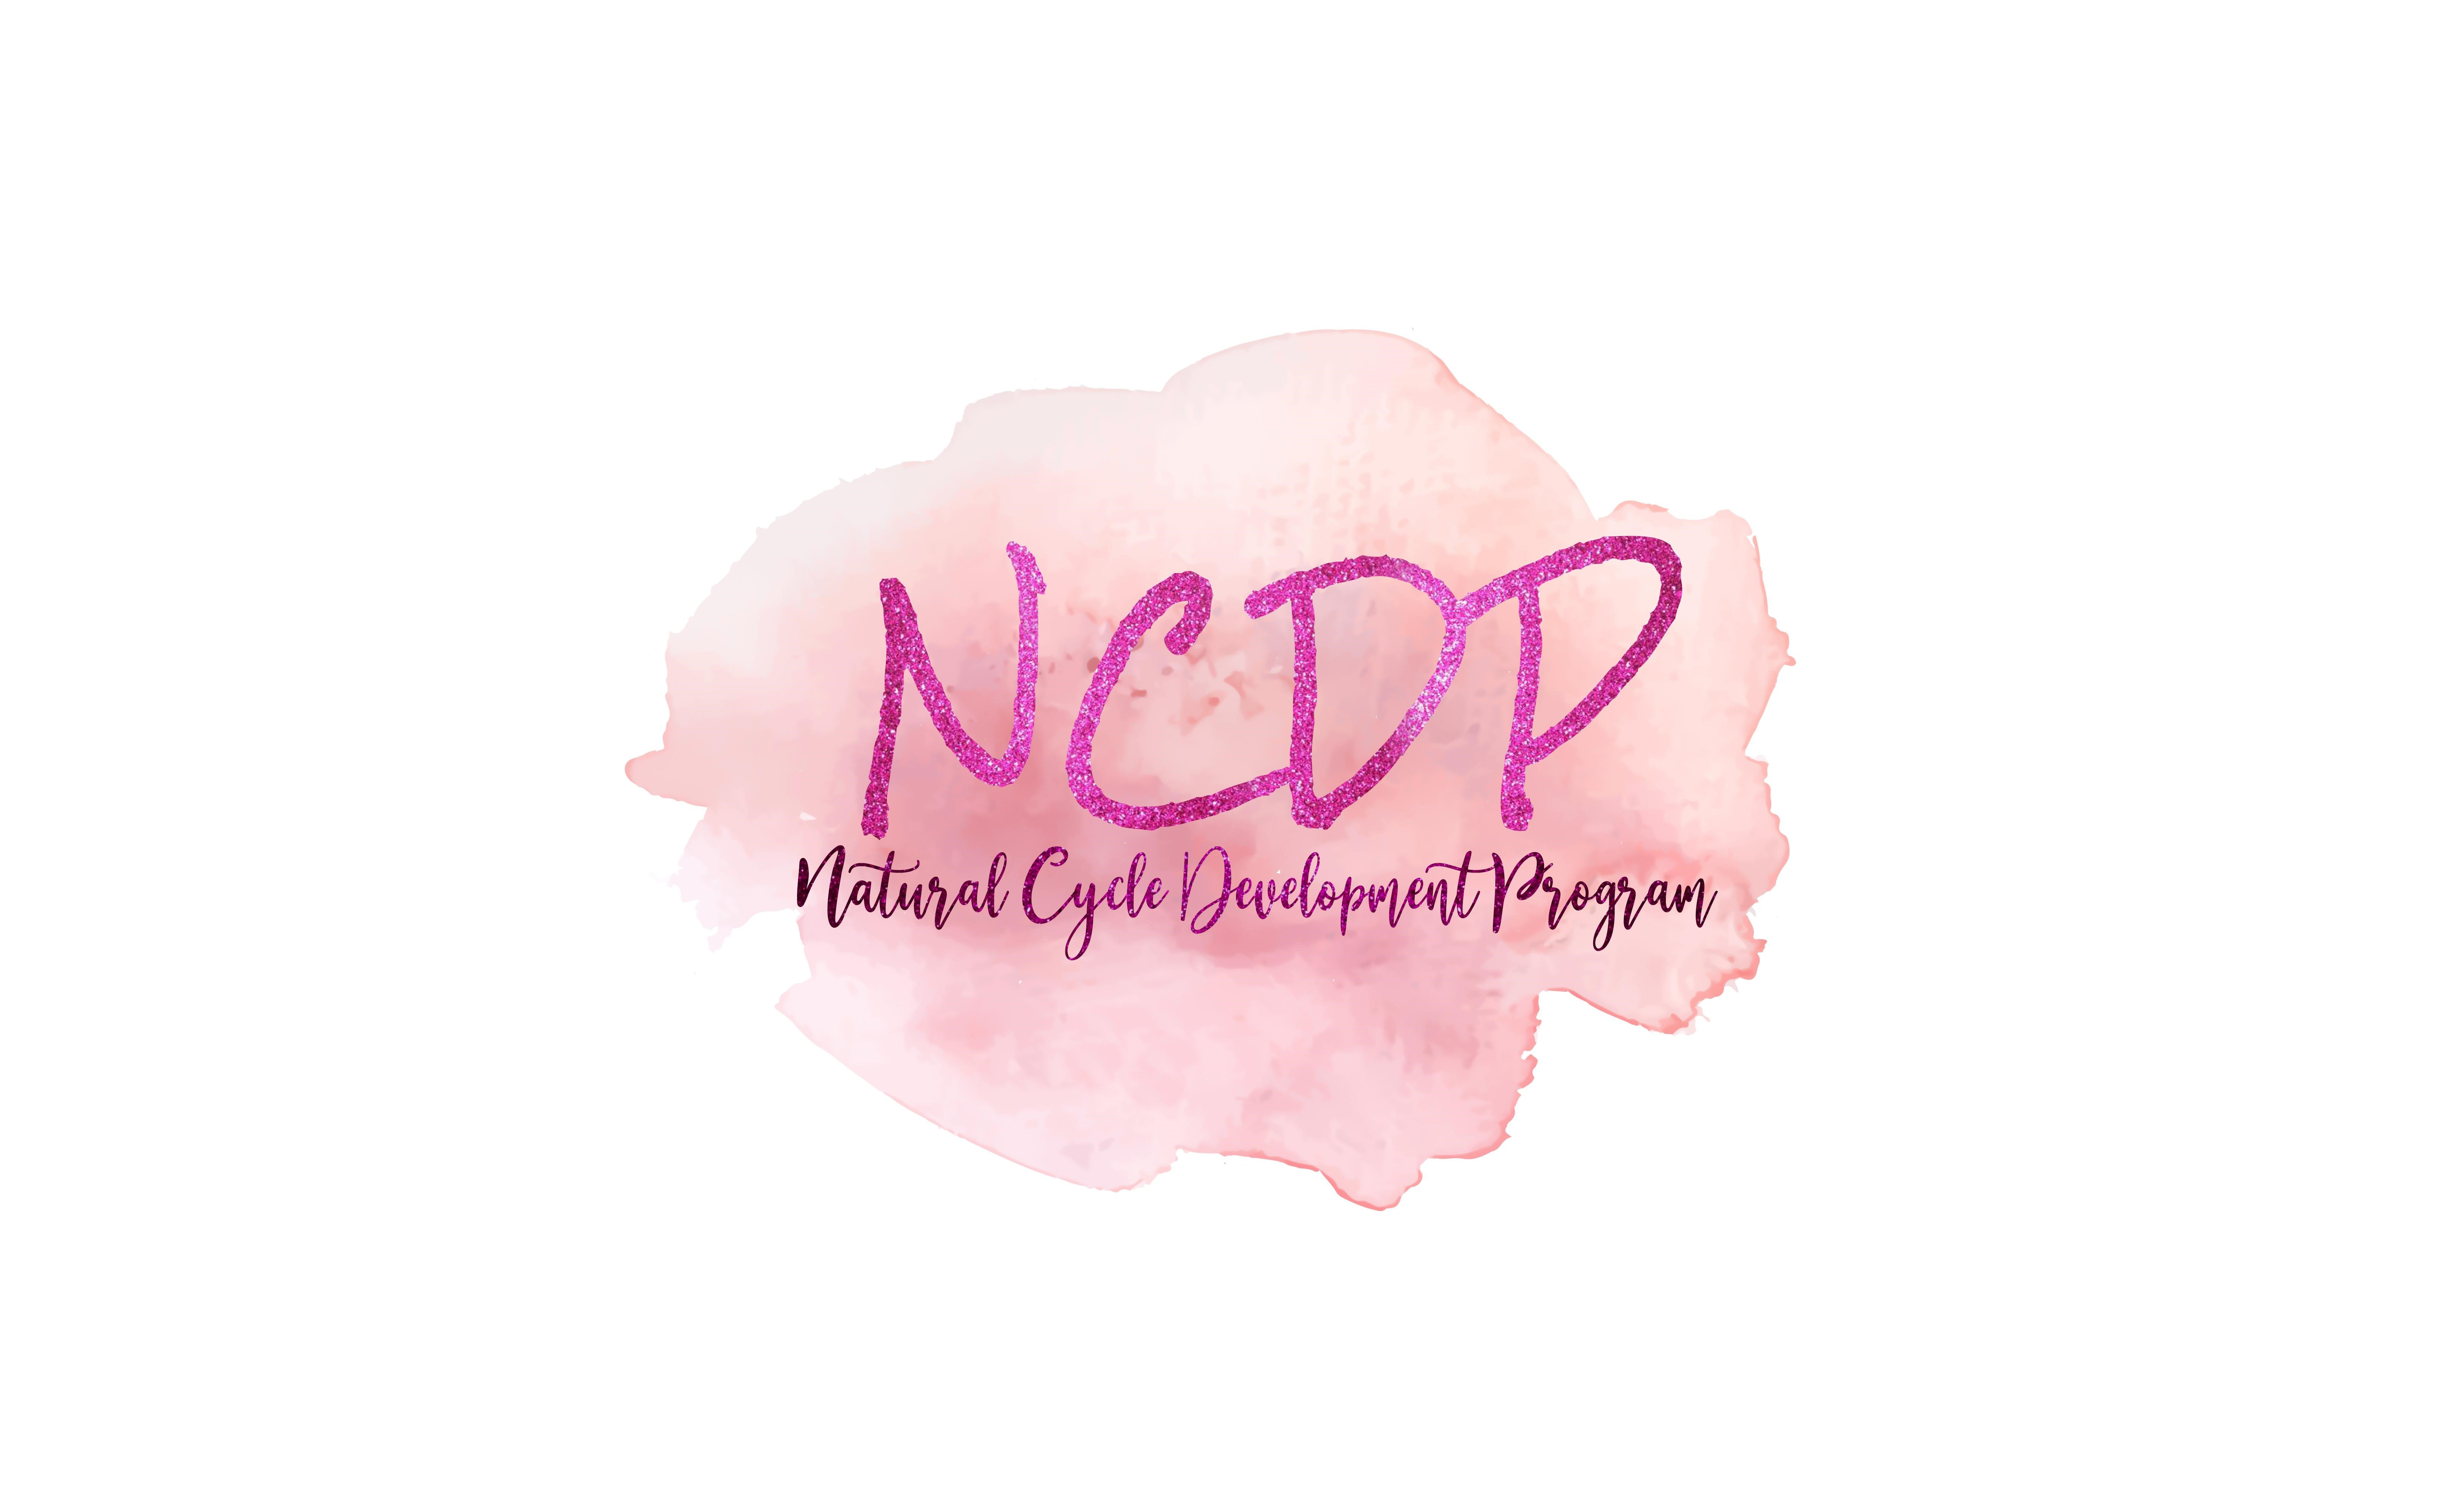 Natural Cycle Development Program